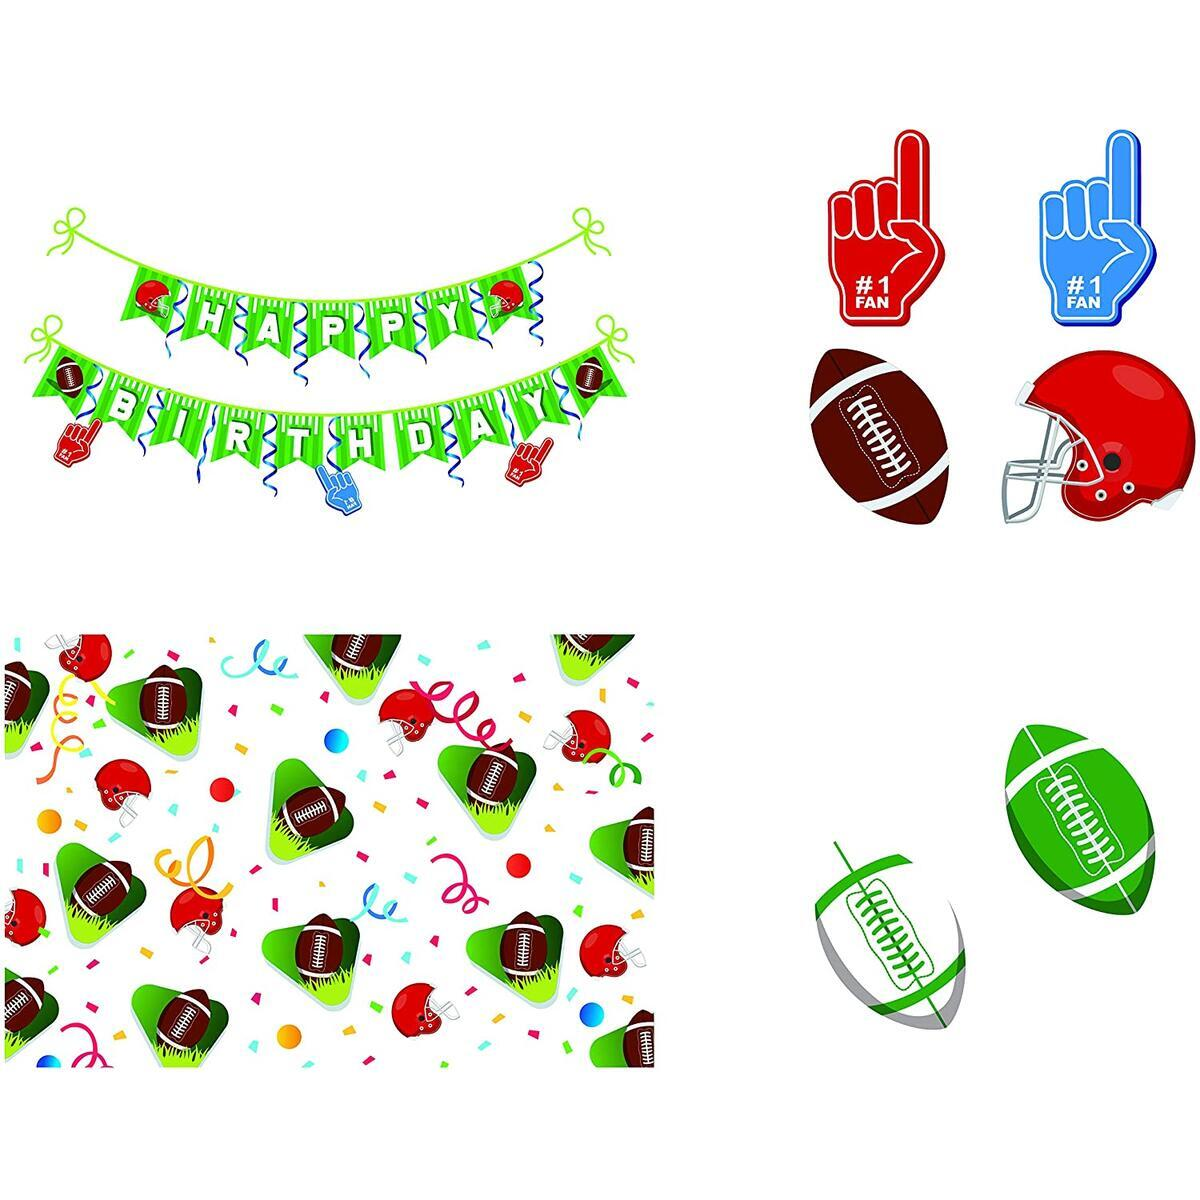 Party Essentials Football Party Decorations Set – 37Pcs Birthday Party Supplies Kit – Includes Banners, Table Covers, Balloons, Hanging Swirls – Ideal for Kids and Adults, College Party, Super Bowl Night